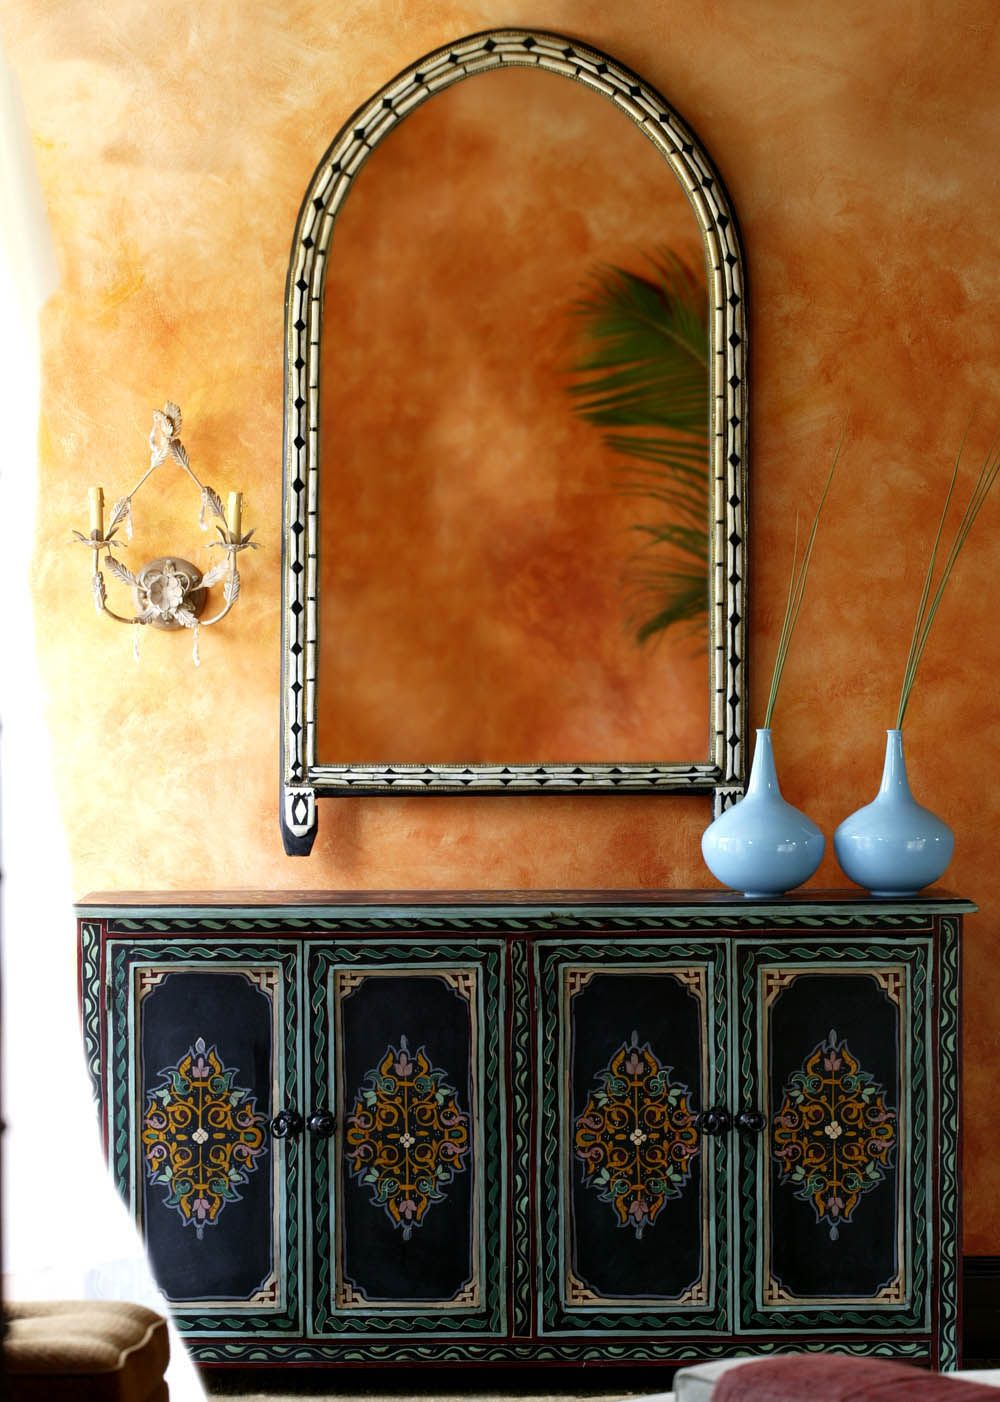 Moroccan Bedroom Decor Add Another Dash Of Paprika Paint Colors Furniture And Cabinets